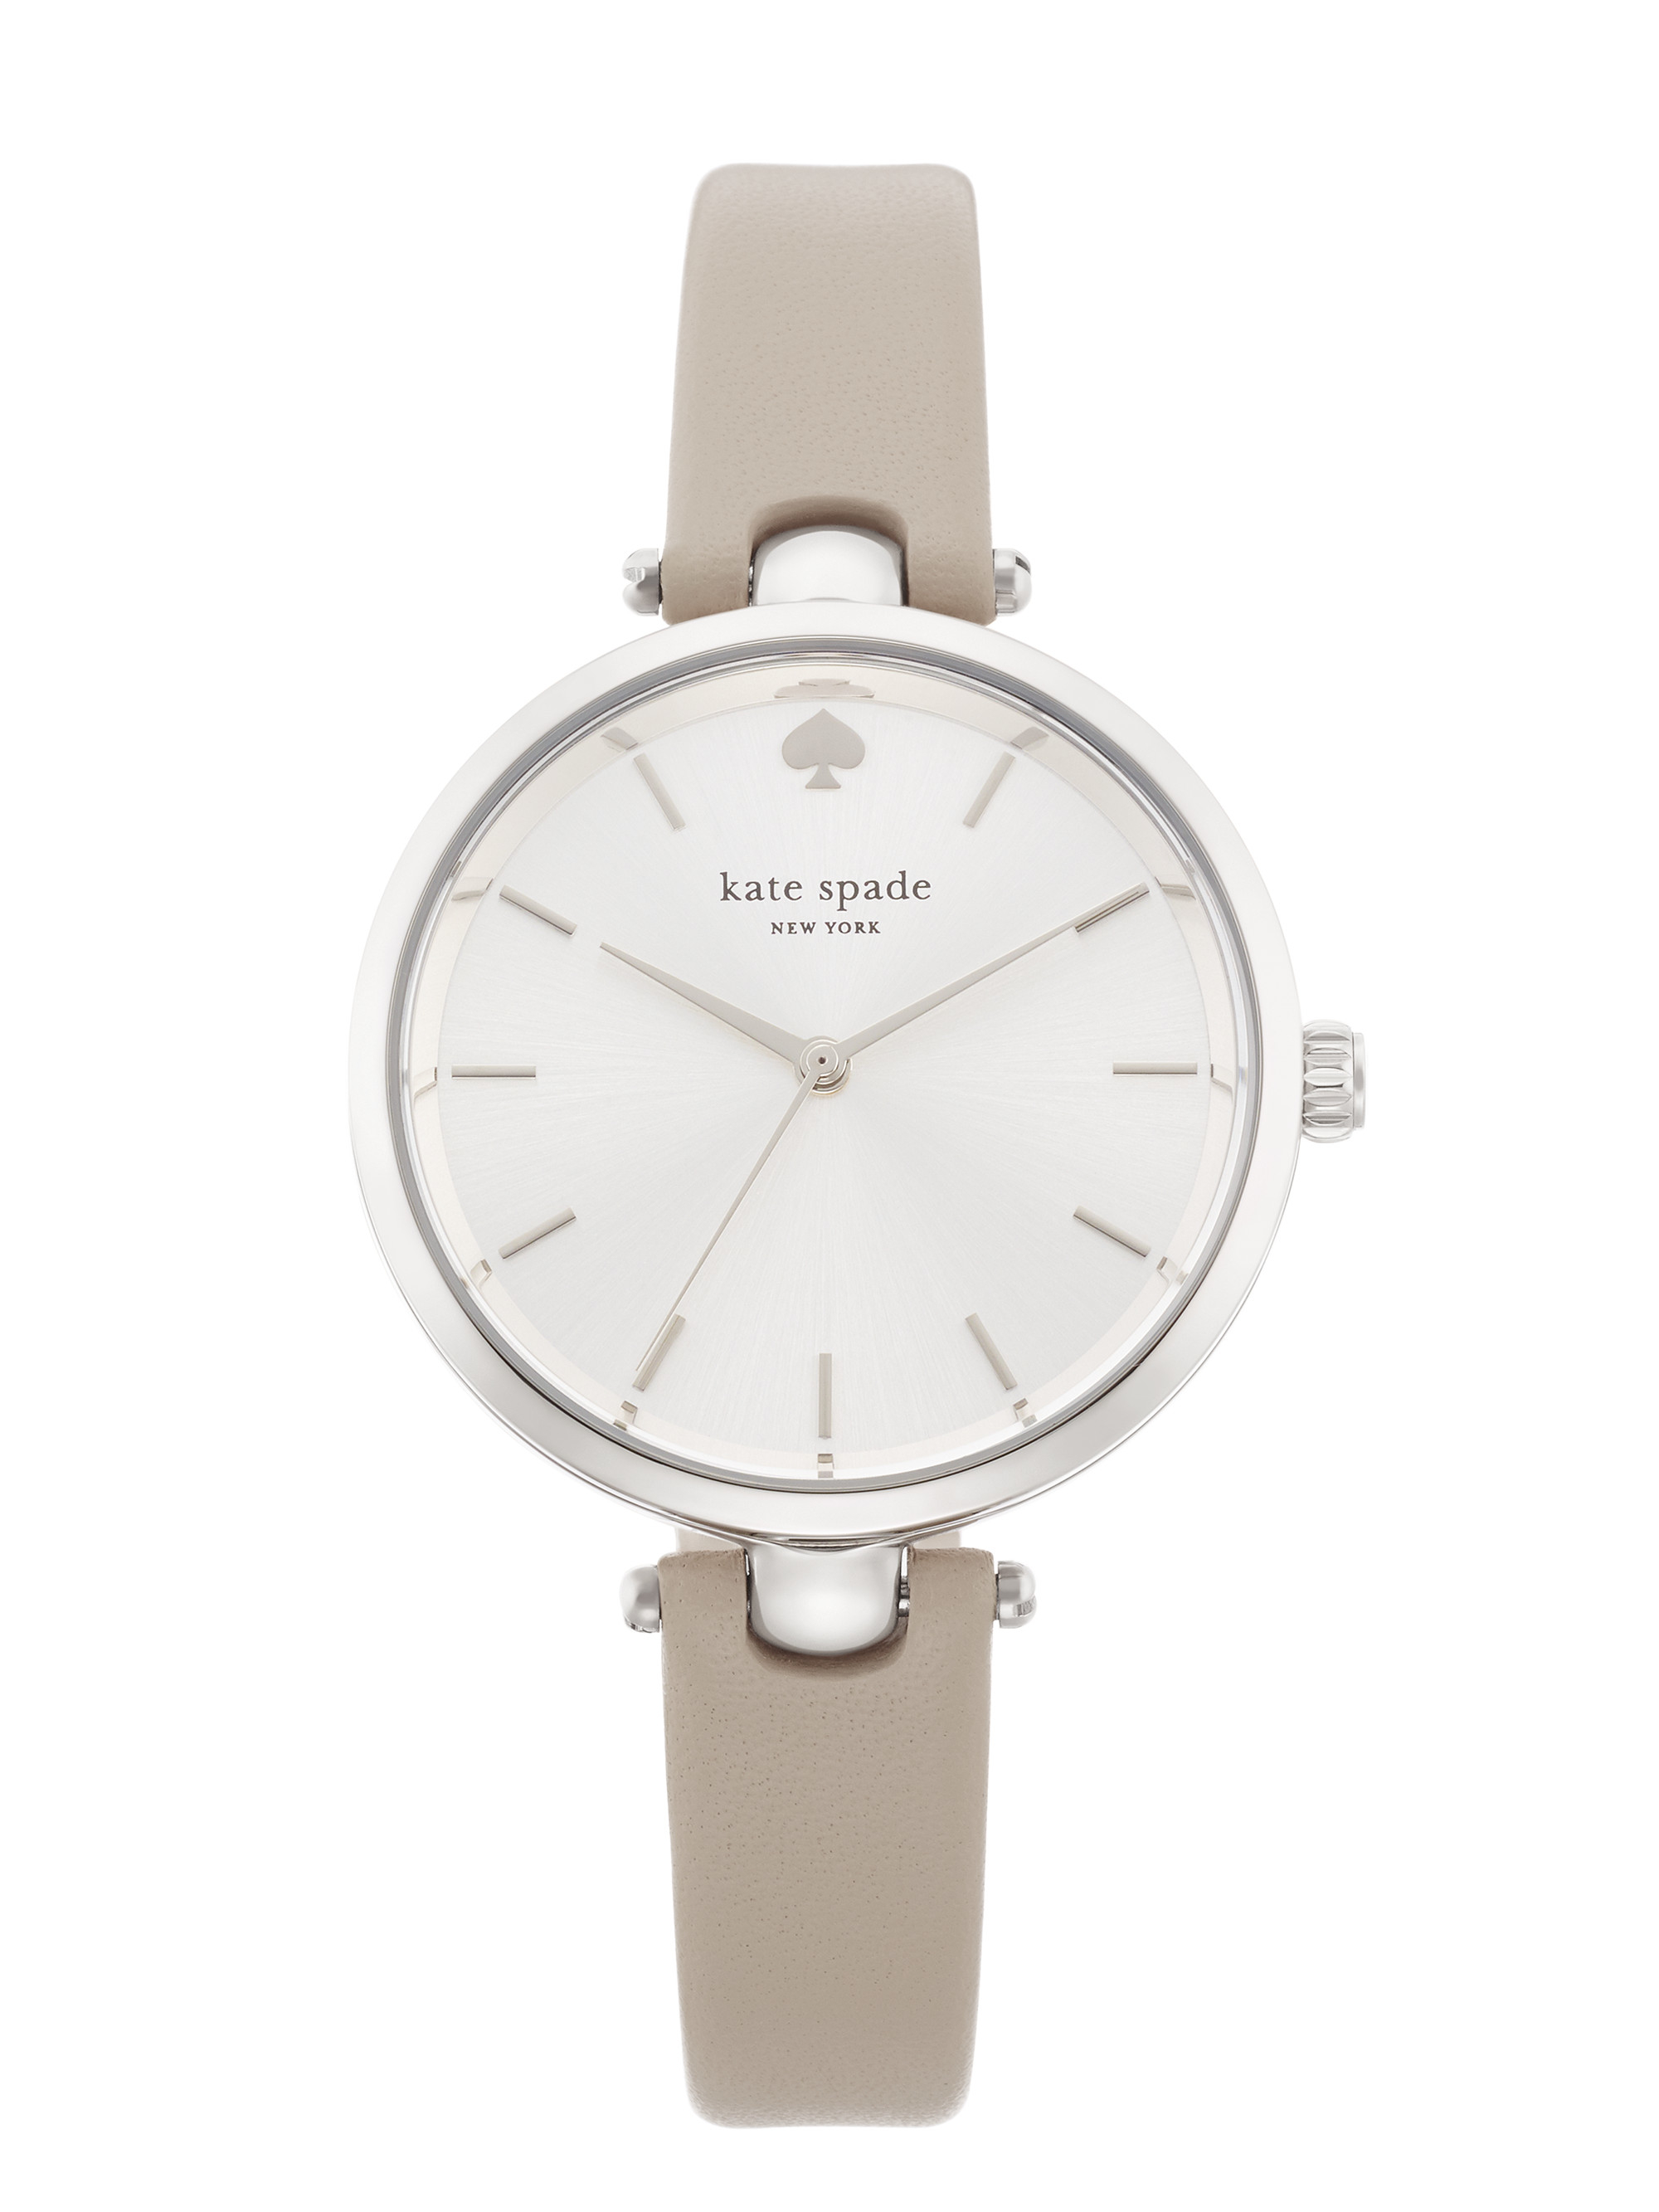 kate spade new york in gray lyst